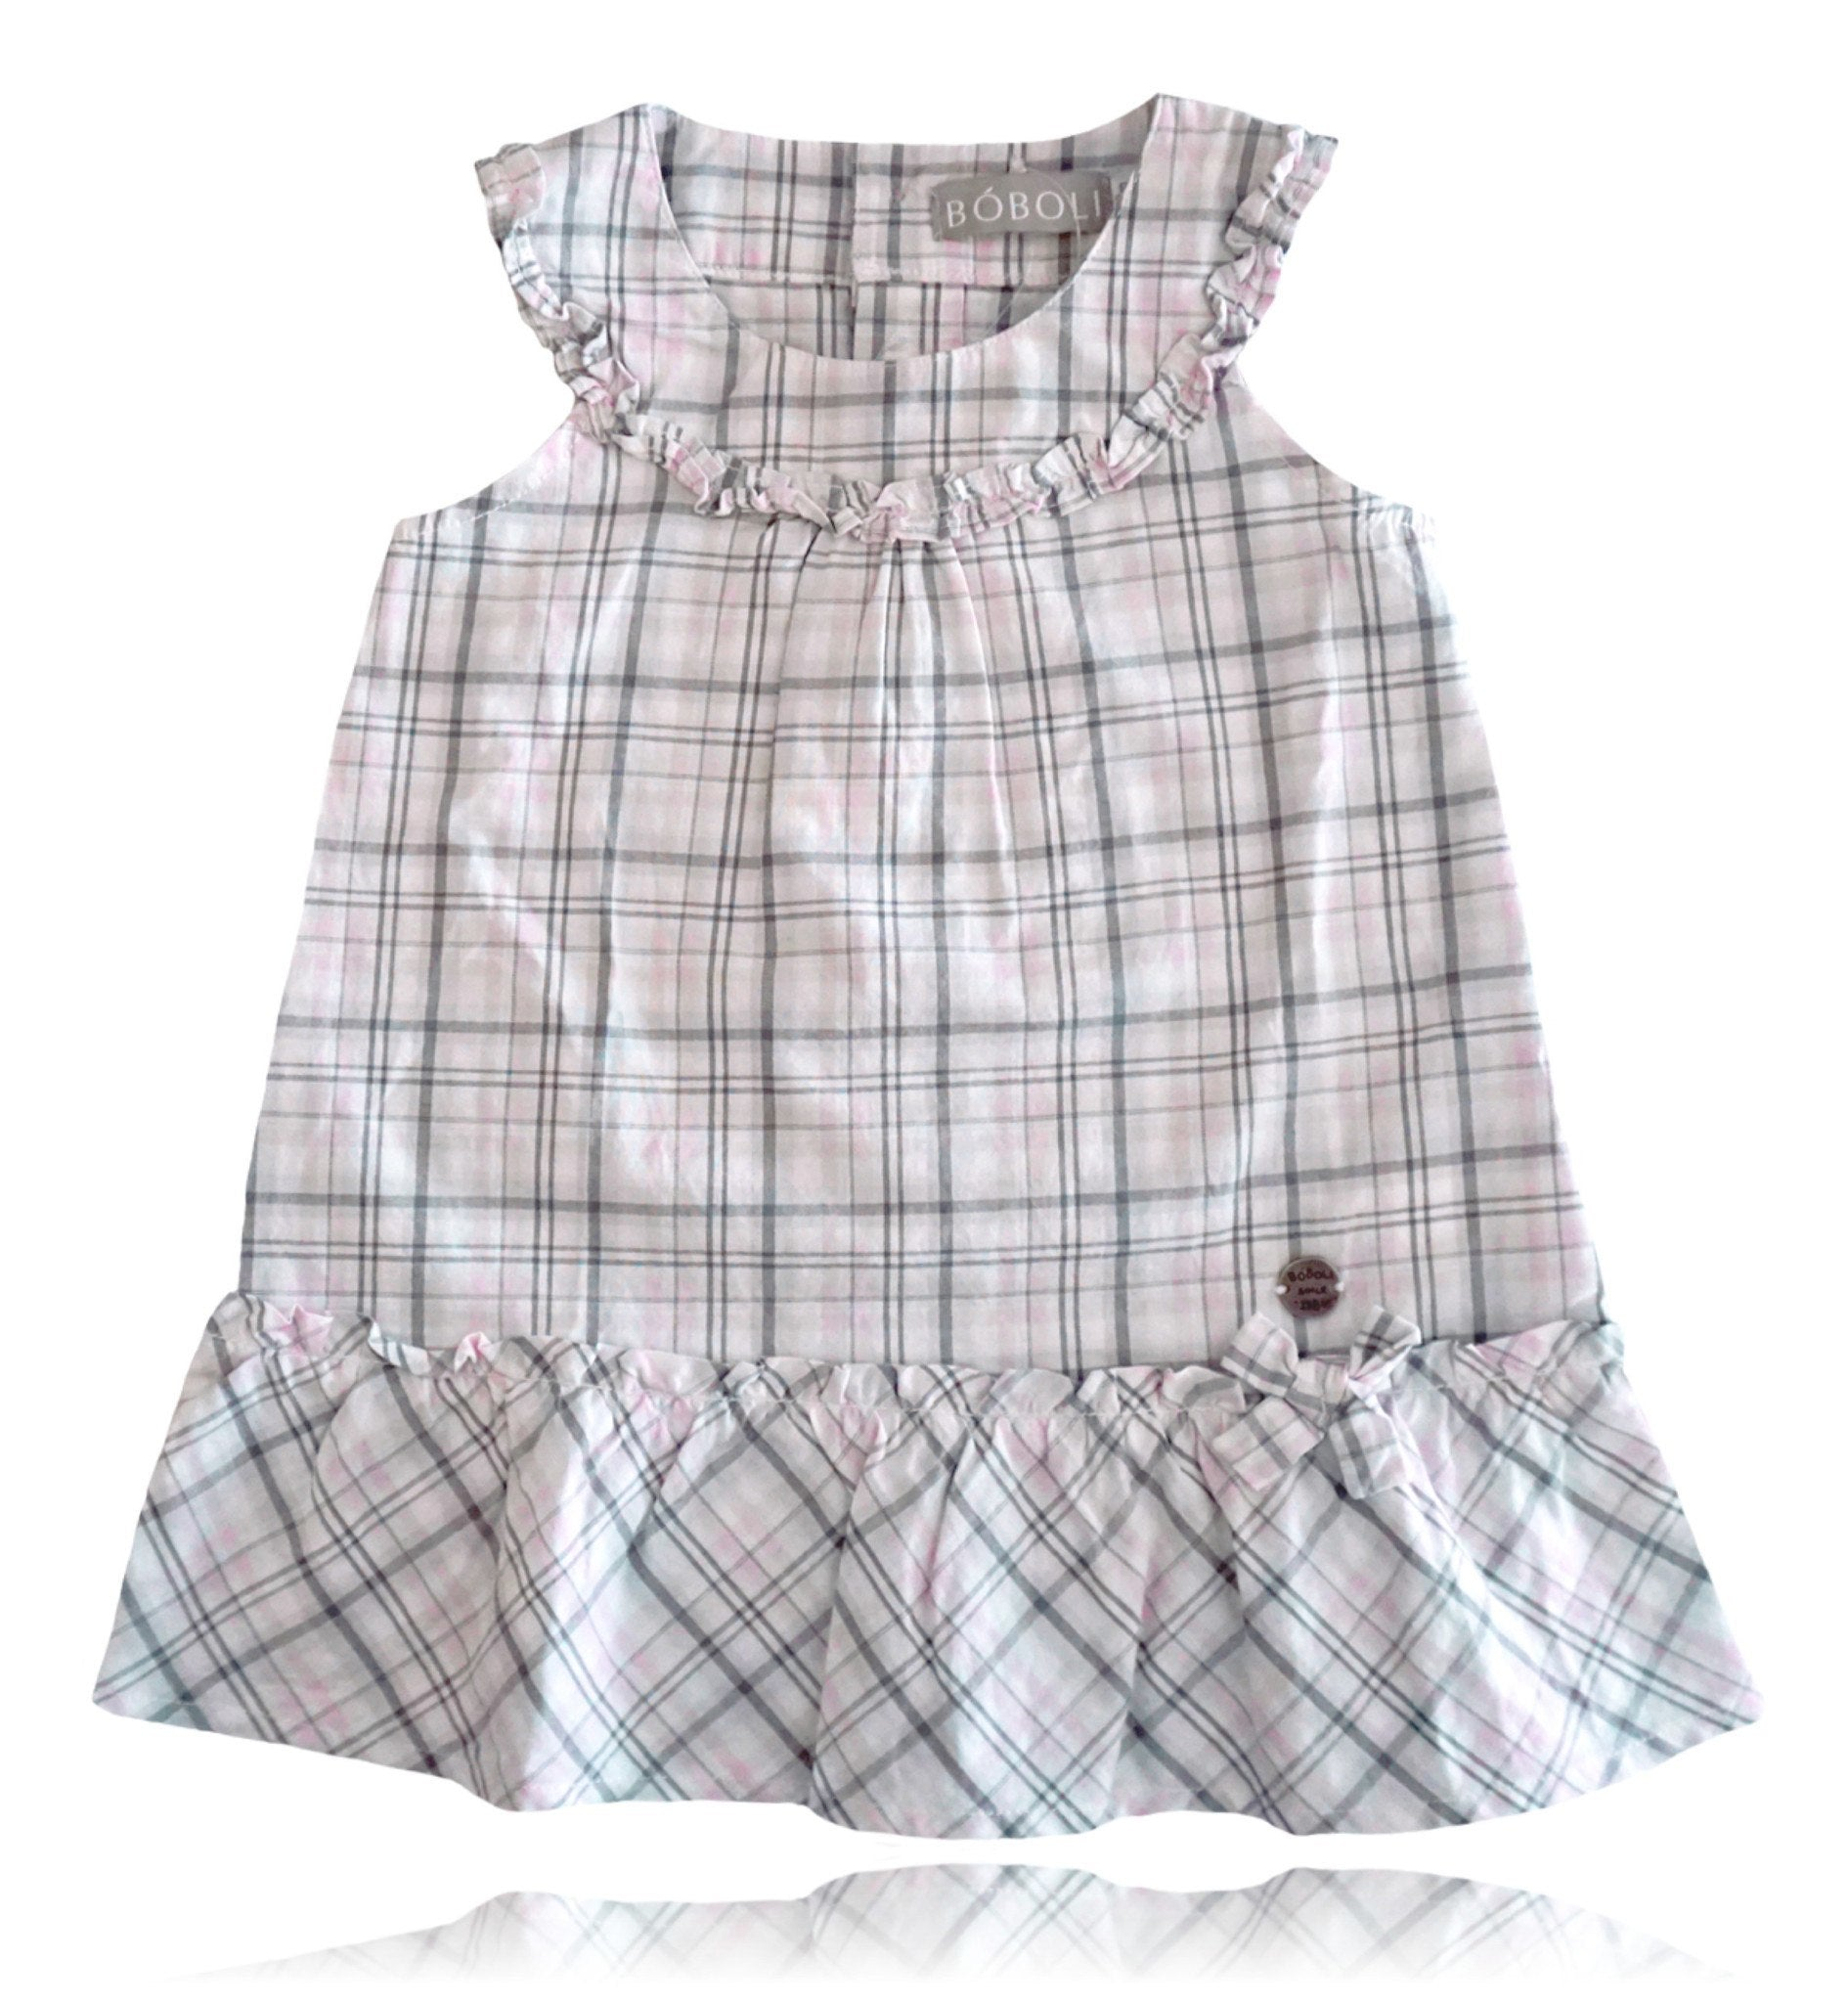 Spanish baby clothes | baby Dress | Pink and grey check print 2 piece dress set |babymaC  - 1